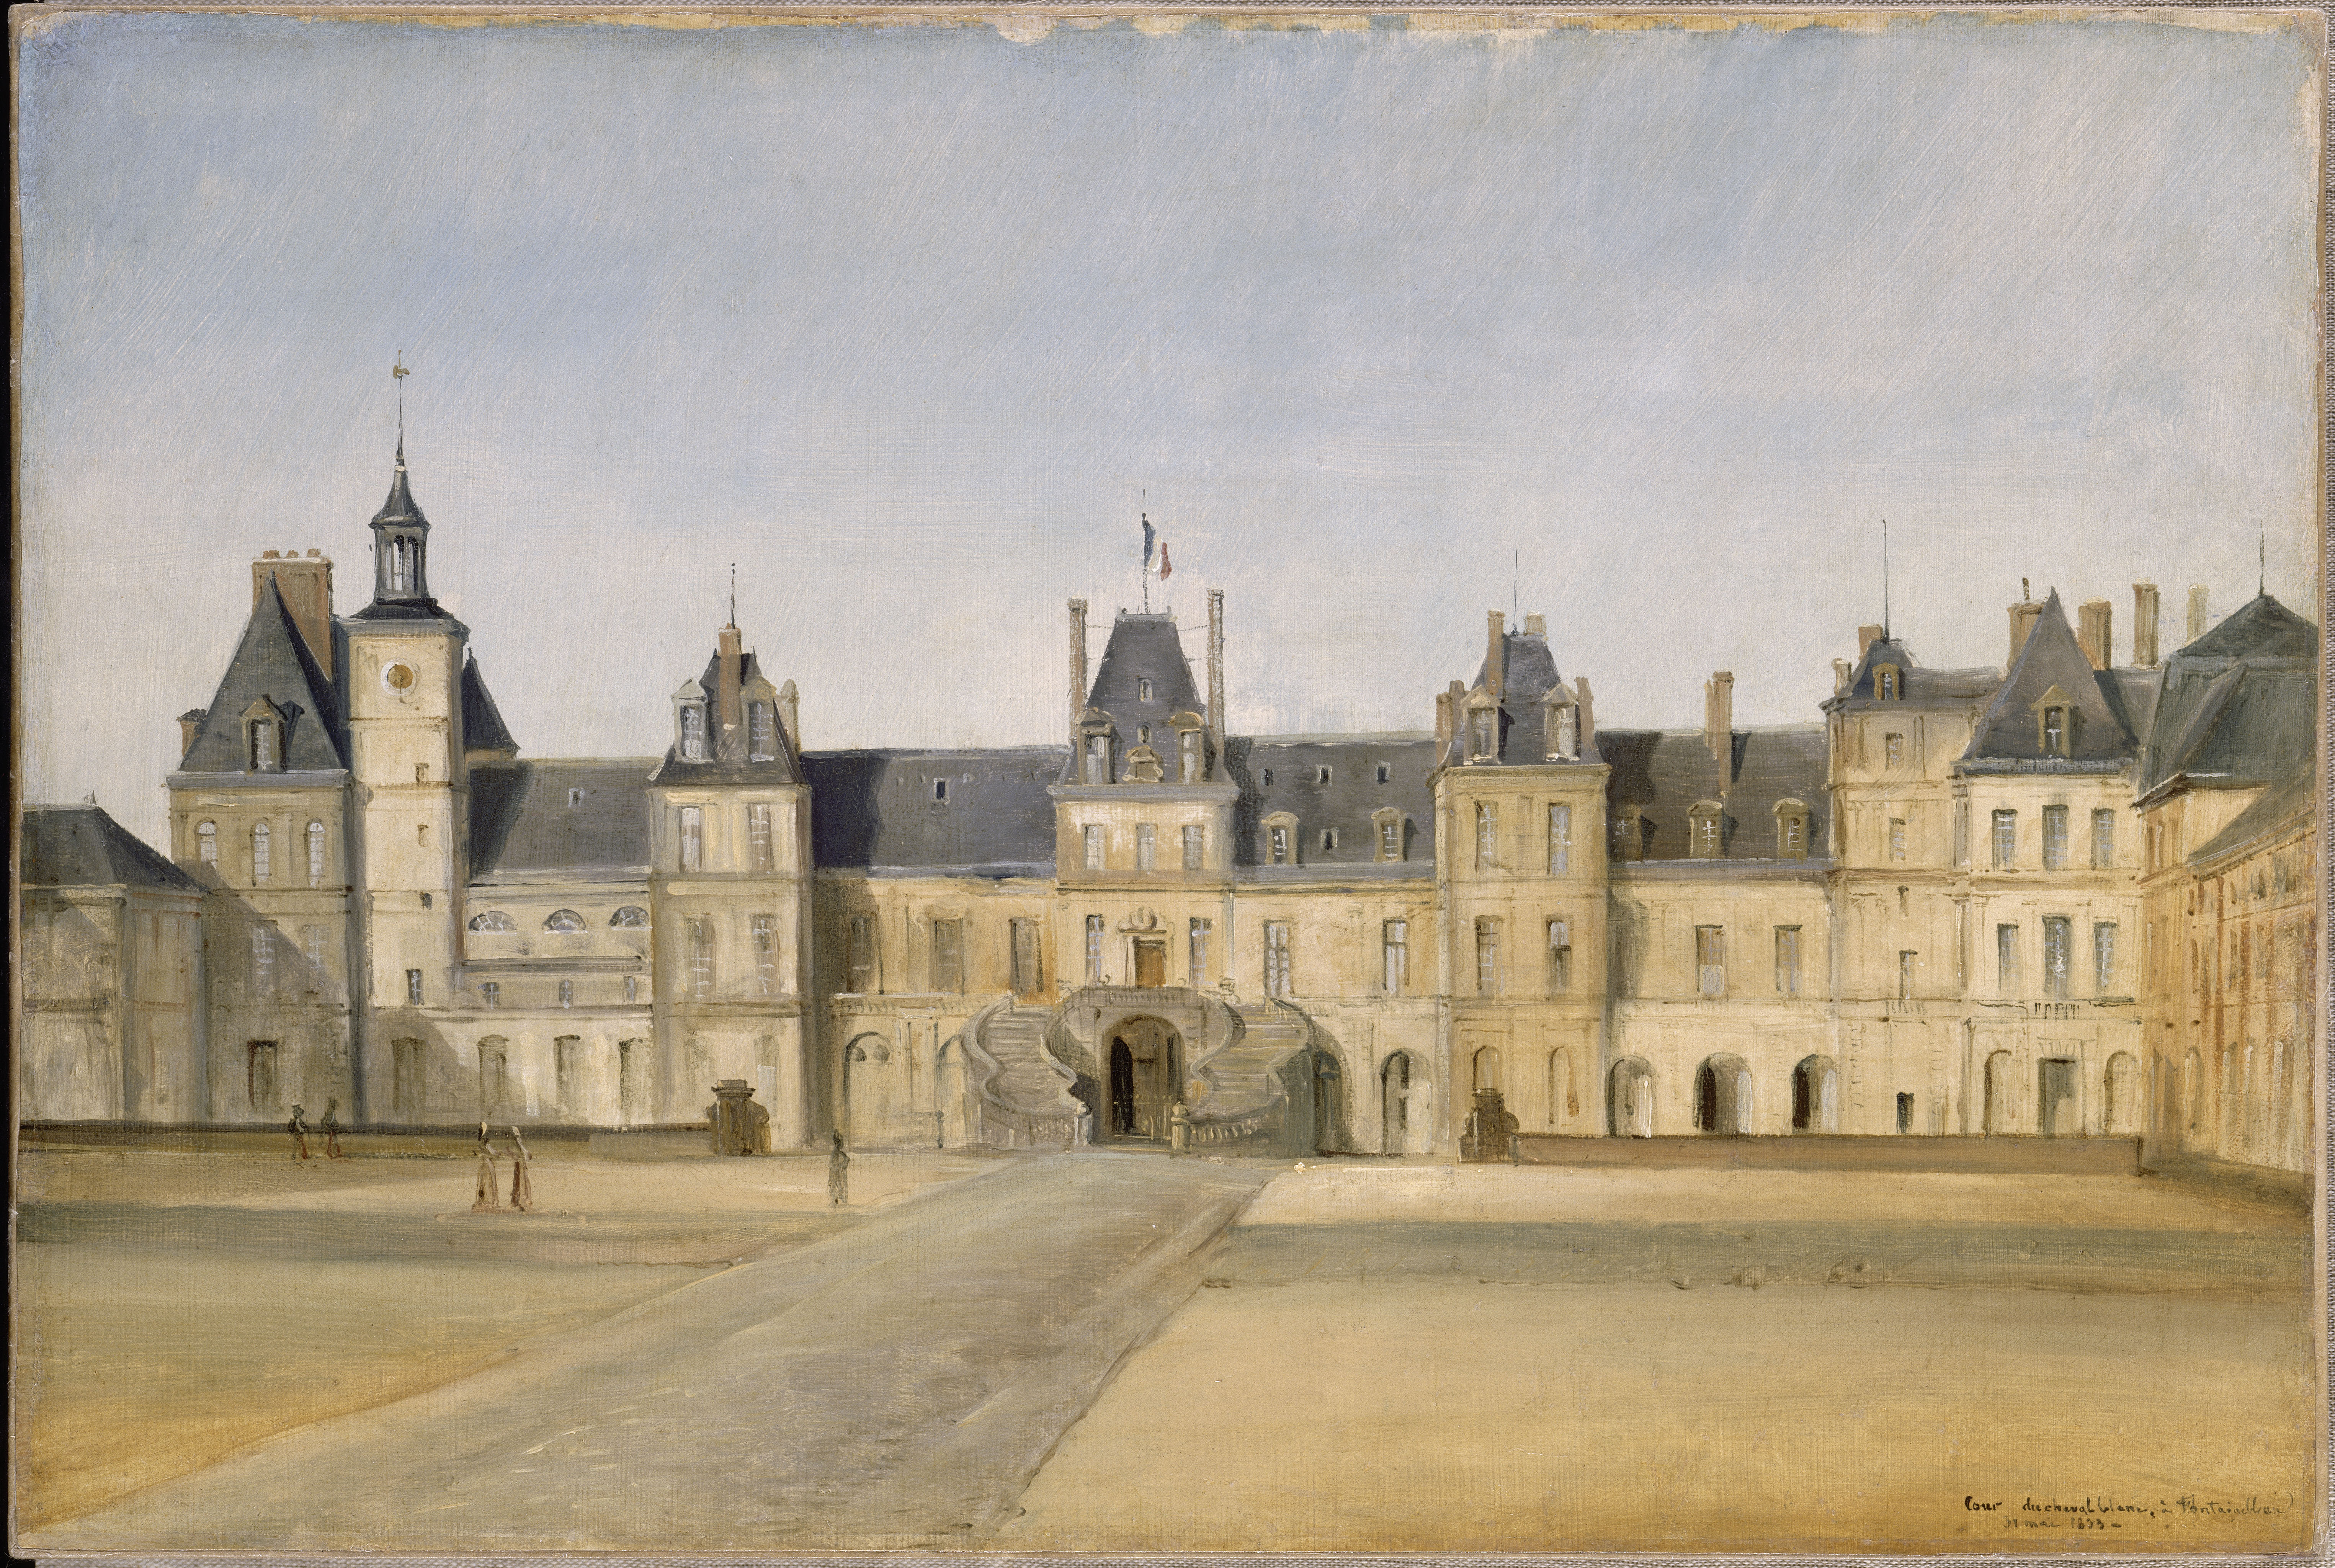 View of the Château de Fontainebleau from the White Horse Courtyard - château de Fontainebleau - © RMN Grand Palais